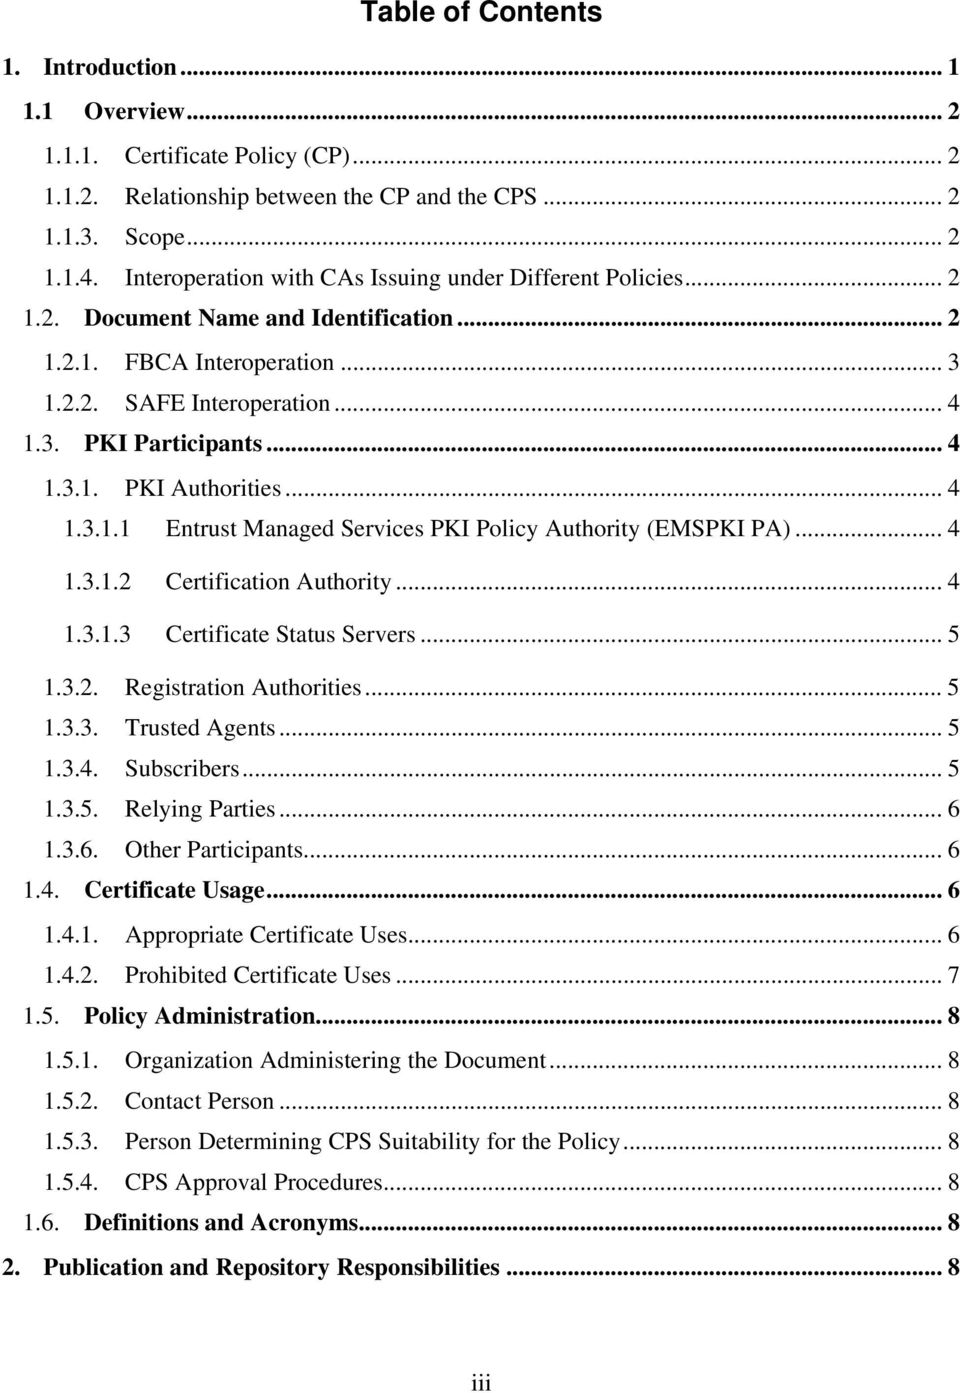 .. 4 1.3.1.1 Entrust Managed Services PKI Policy Authority (EMSPKI PA)... 4 1.3.1.2 Certification Authority... 4 1.3.1.3 Certificate Status Servers... 5 1.3.2. Registration Authorities... 5 1.3.3. Trusted Agents.